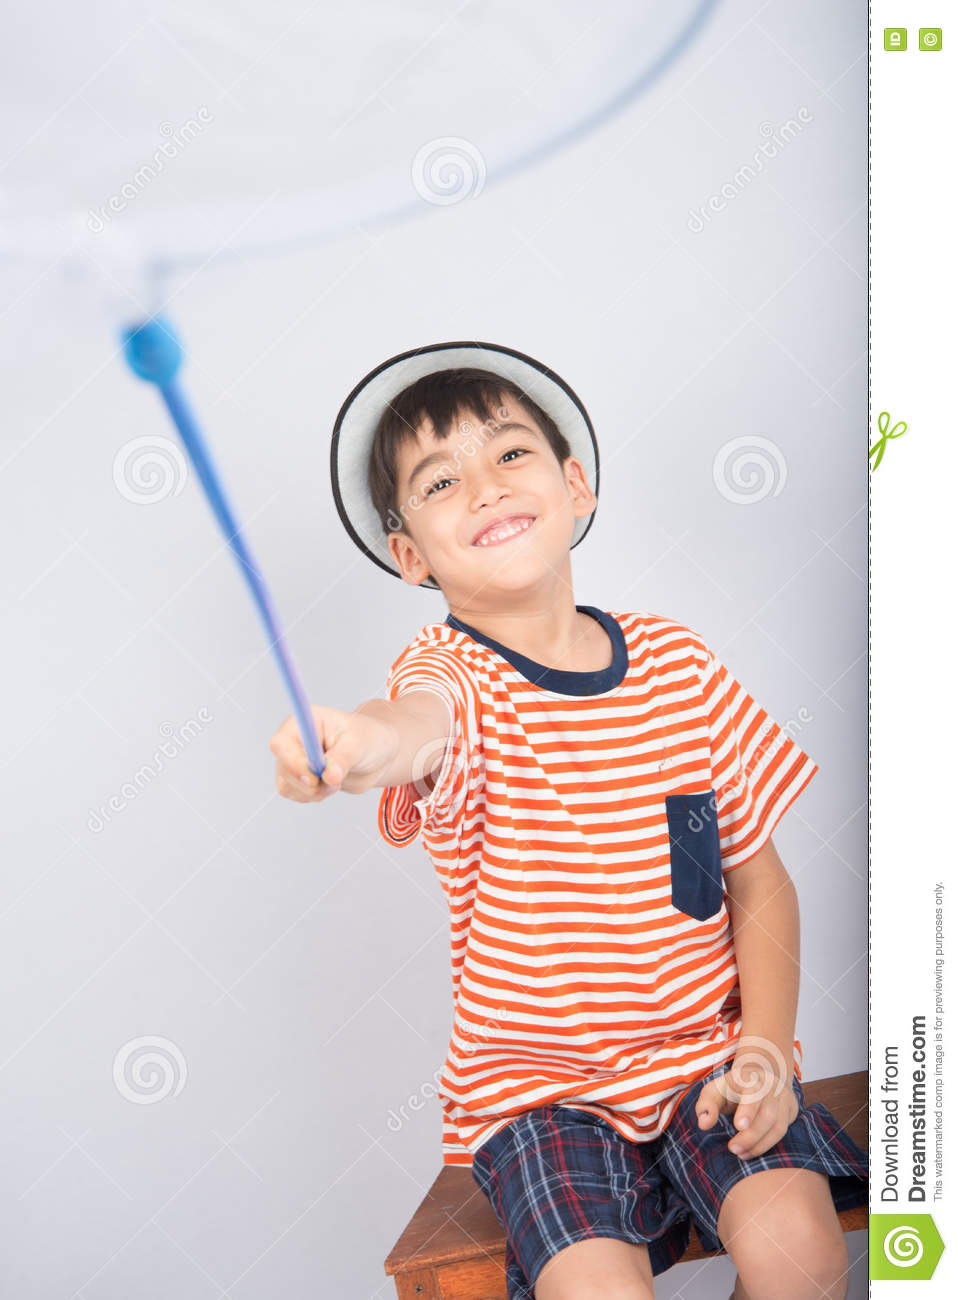 Little boy taking insect net outdoor activities on white background